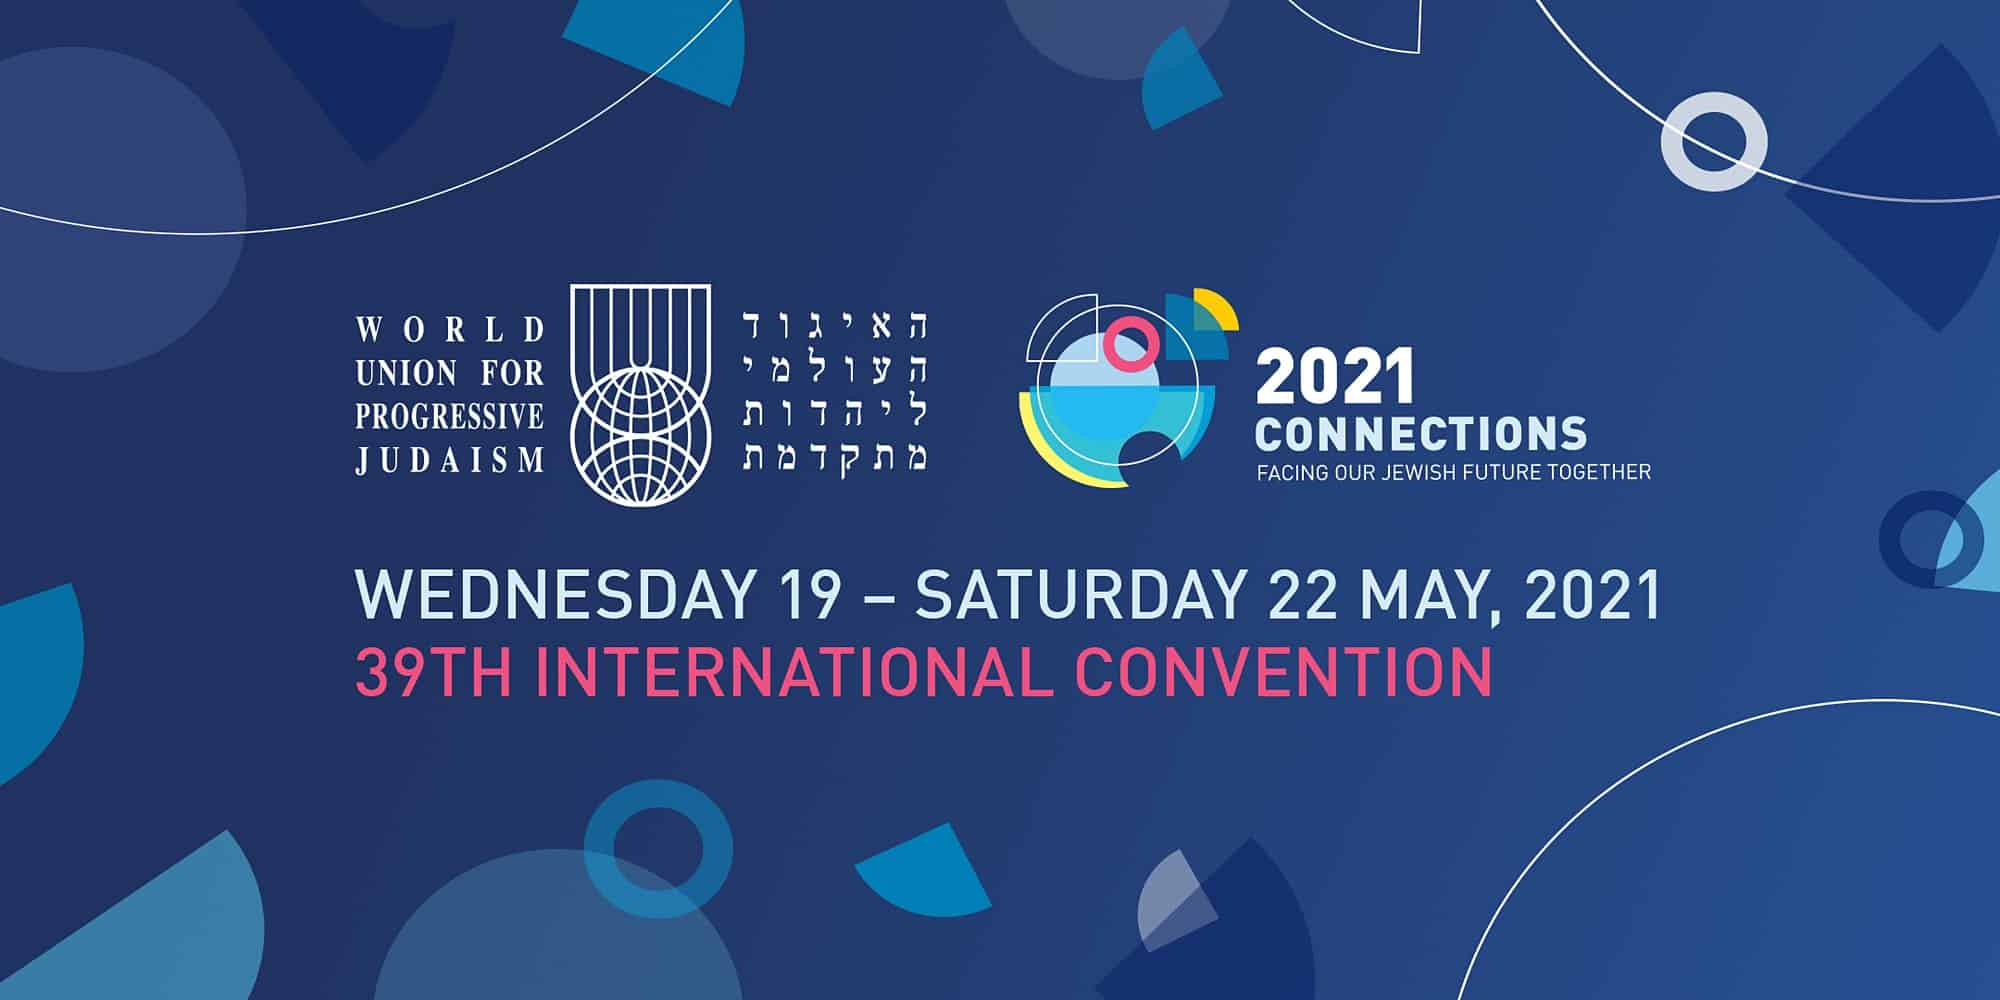 CONNECTIONS 2021: Facing Our Jewish Future Together